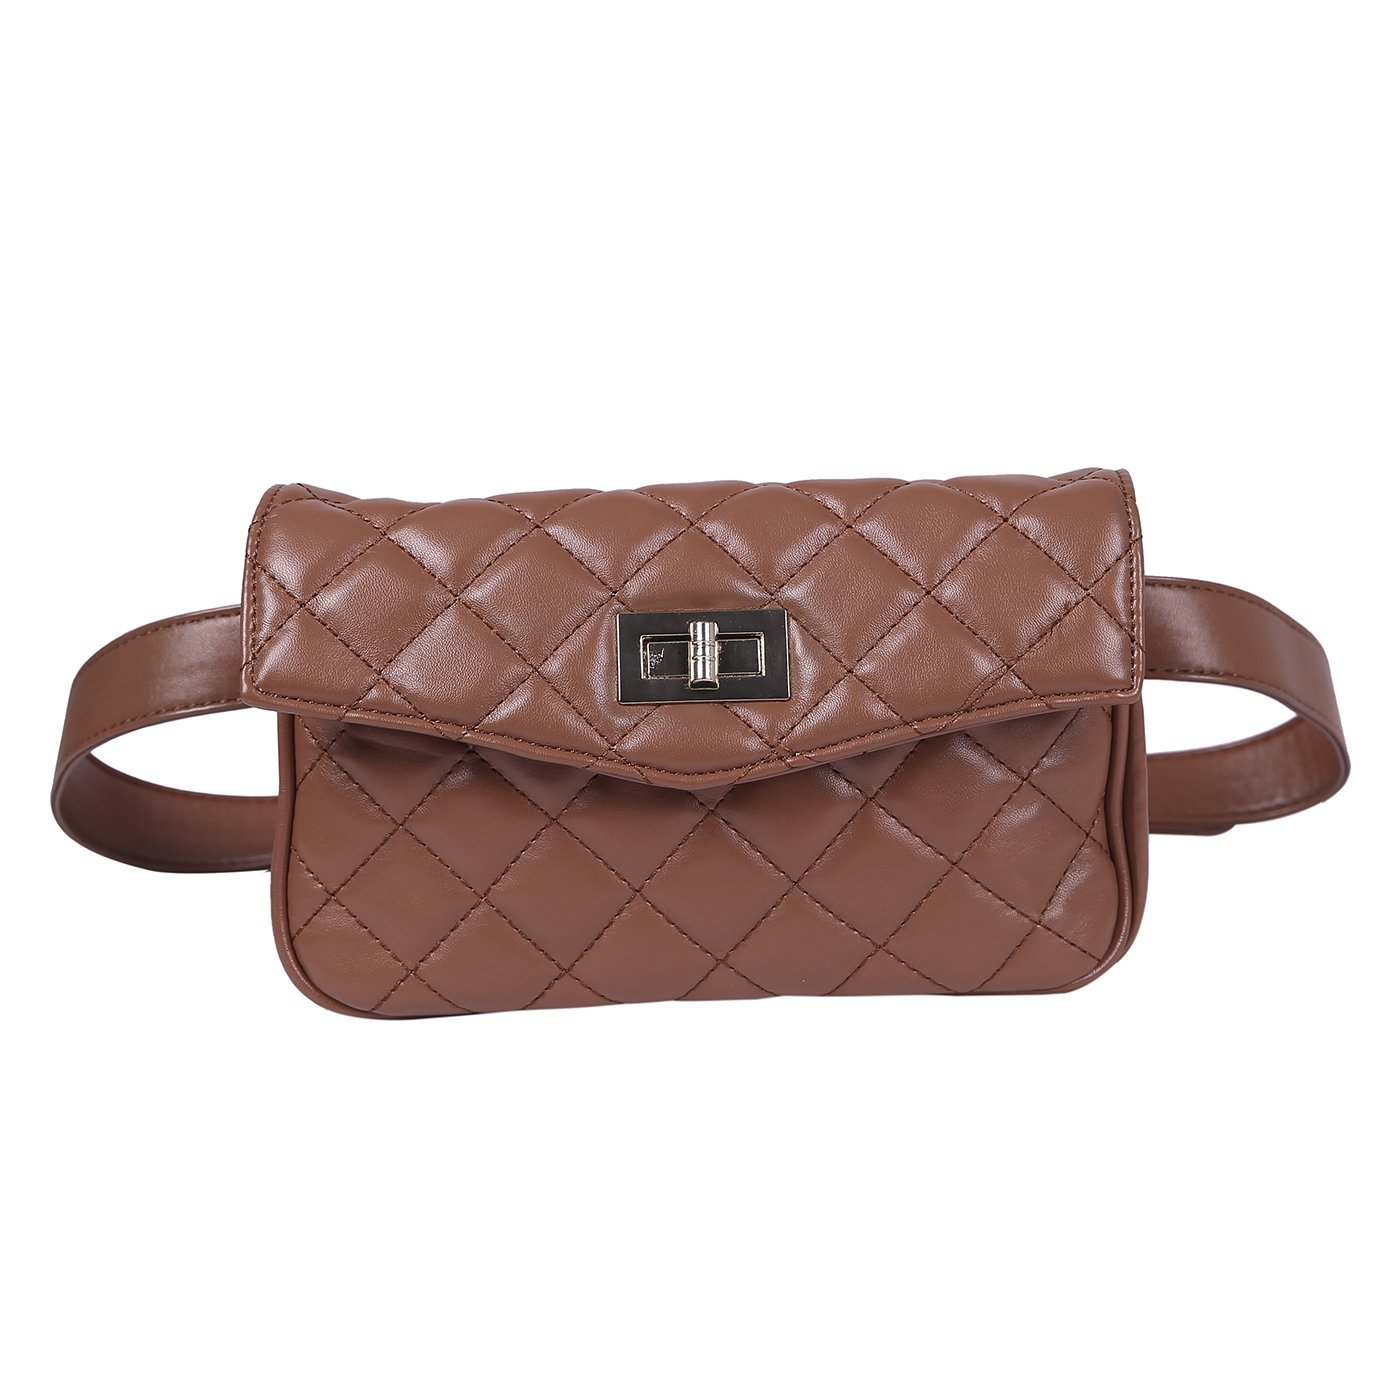 93a0816f37c HDE Quilted Fanny Pack Faux Leather Fashion Belt Bag Waist Pack for Women  with 2 Belts